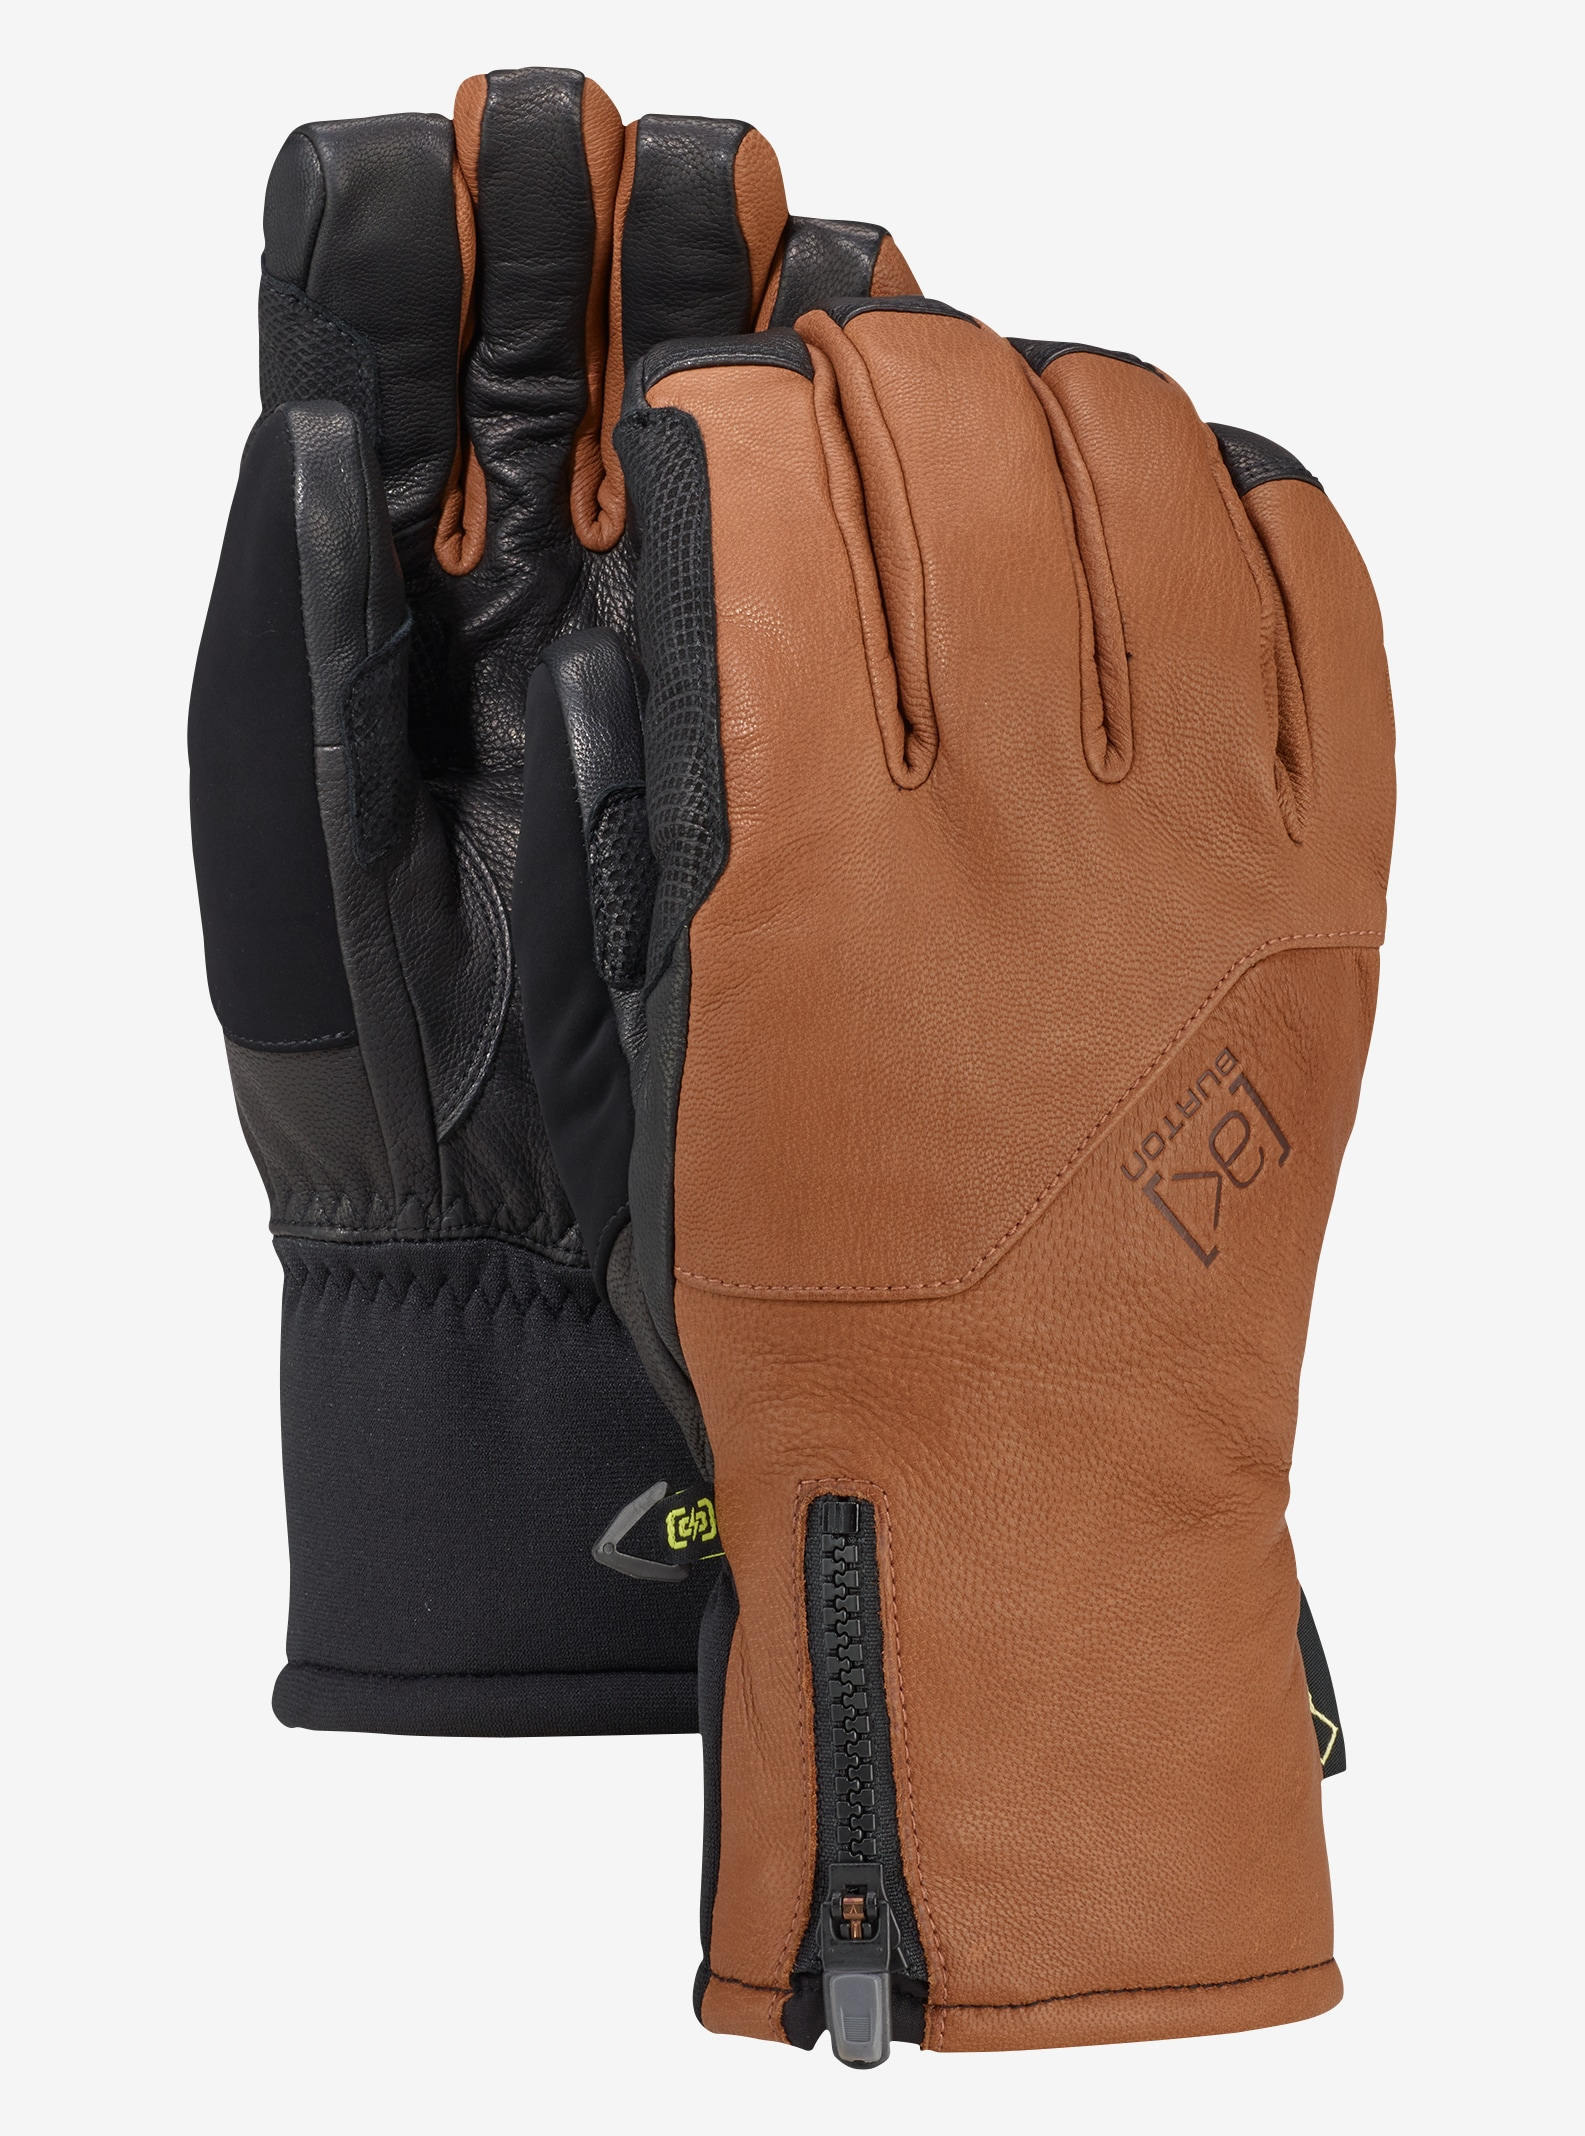 Men's Burton [ak] GORE‑TEX® Guide Glove shown in True Penny